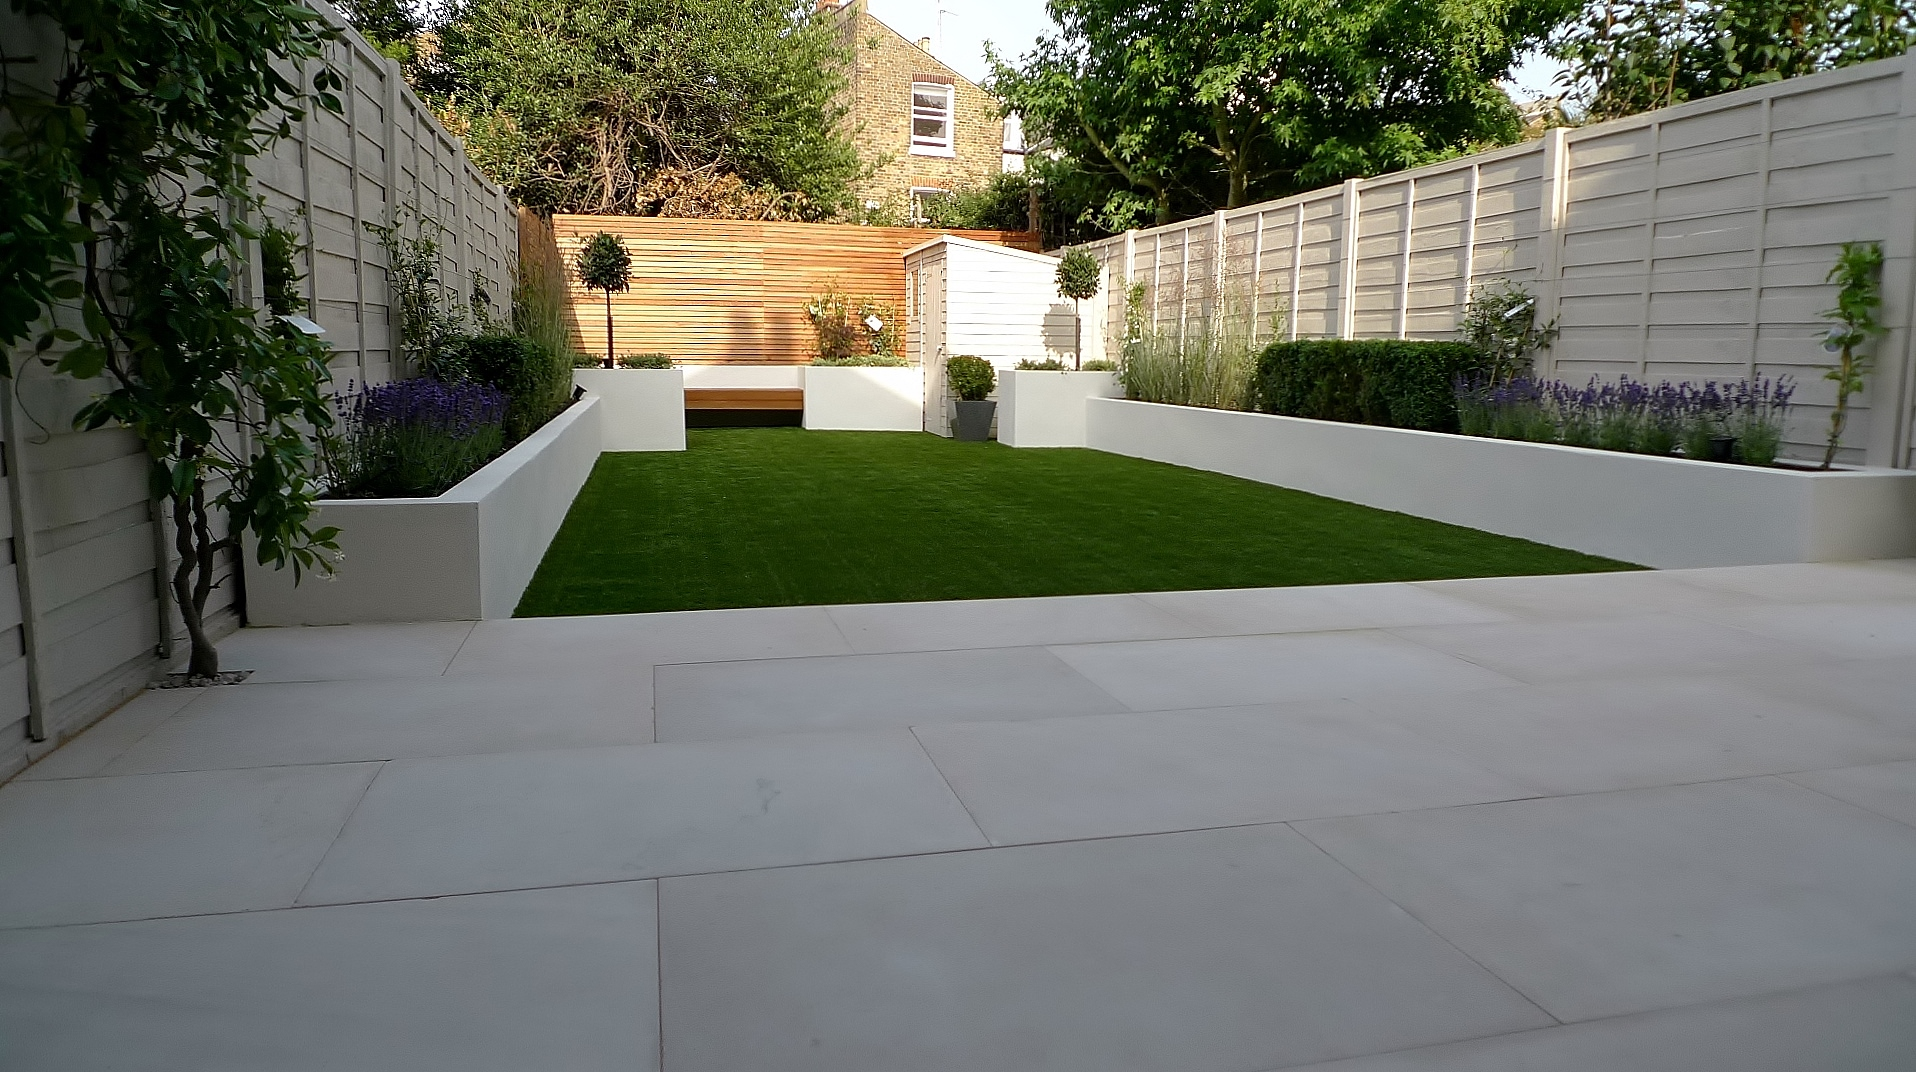 Anewgarden london garden blog for Small garden design